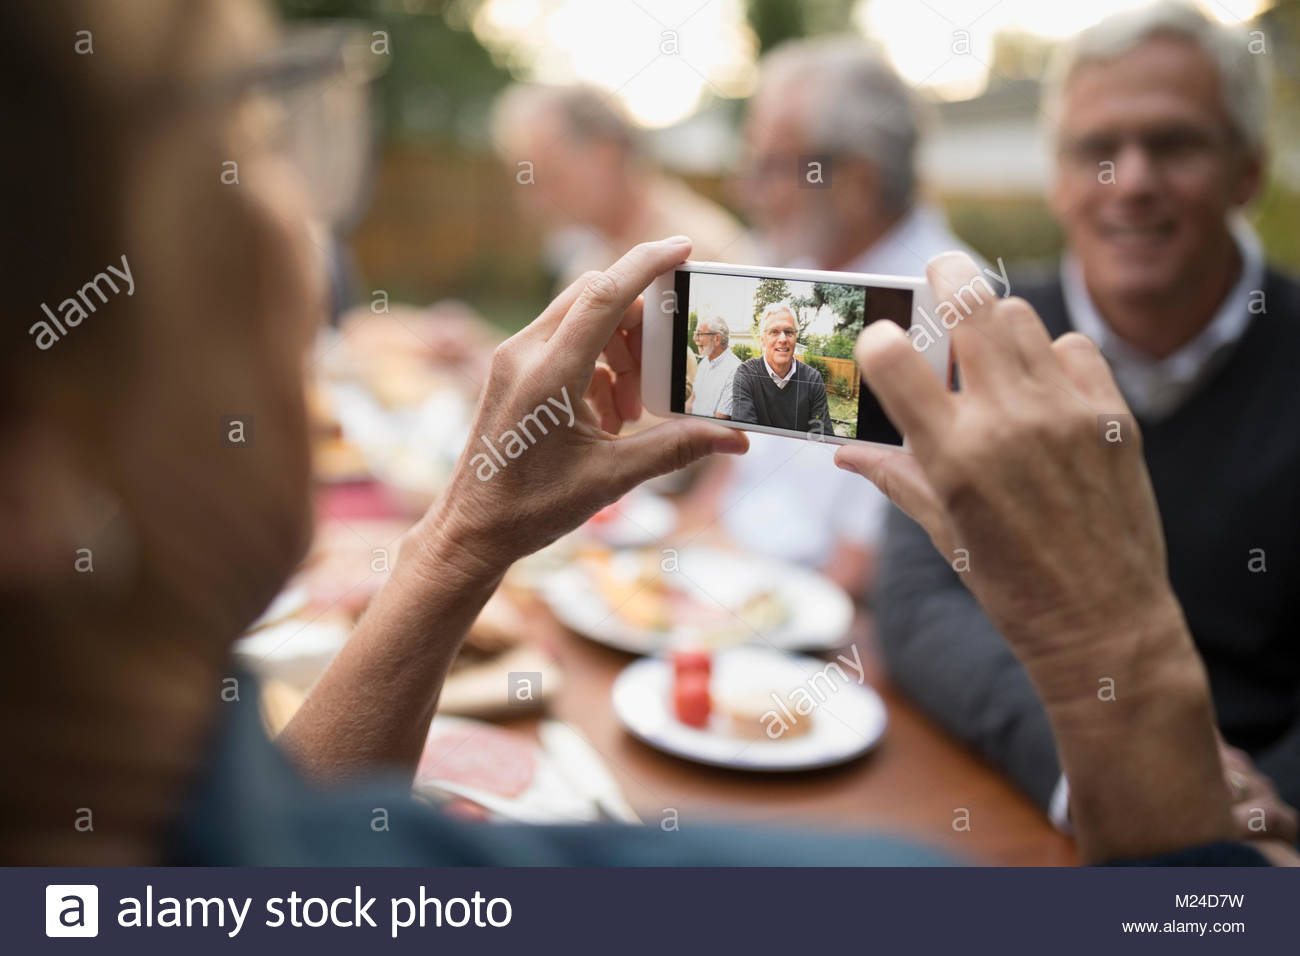 Senior woman photographing husband with camera phone at patio table - Stock Image